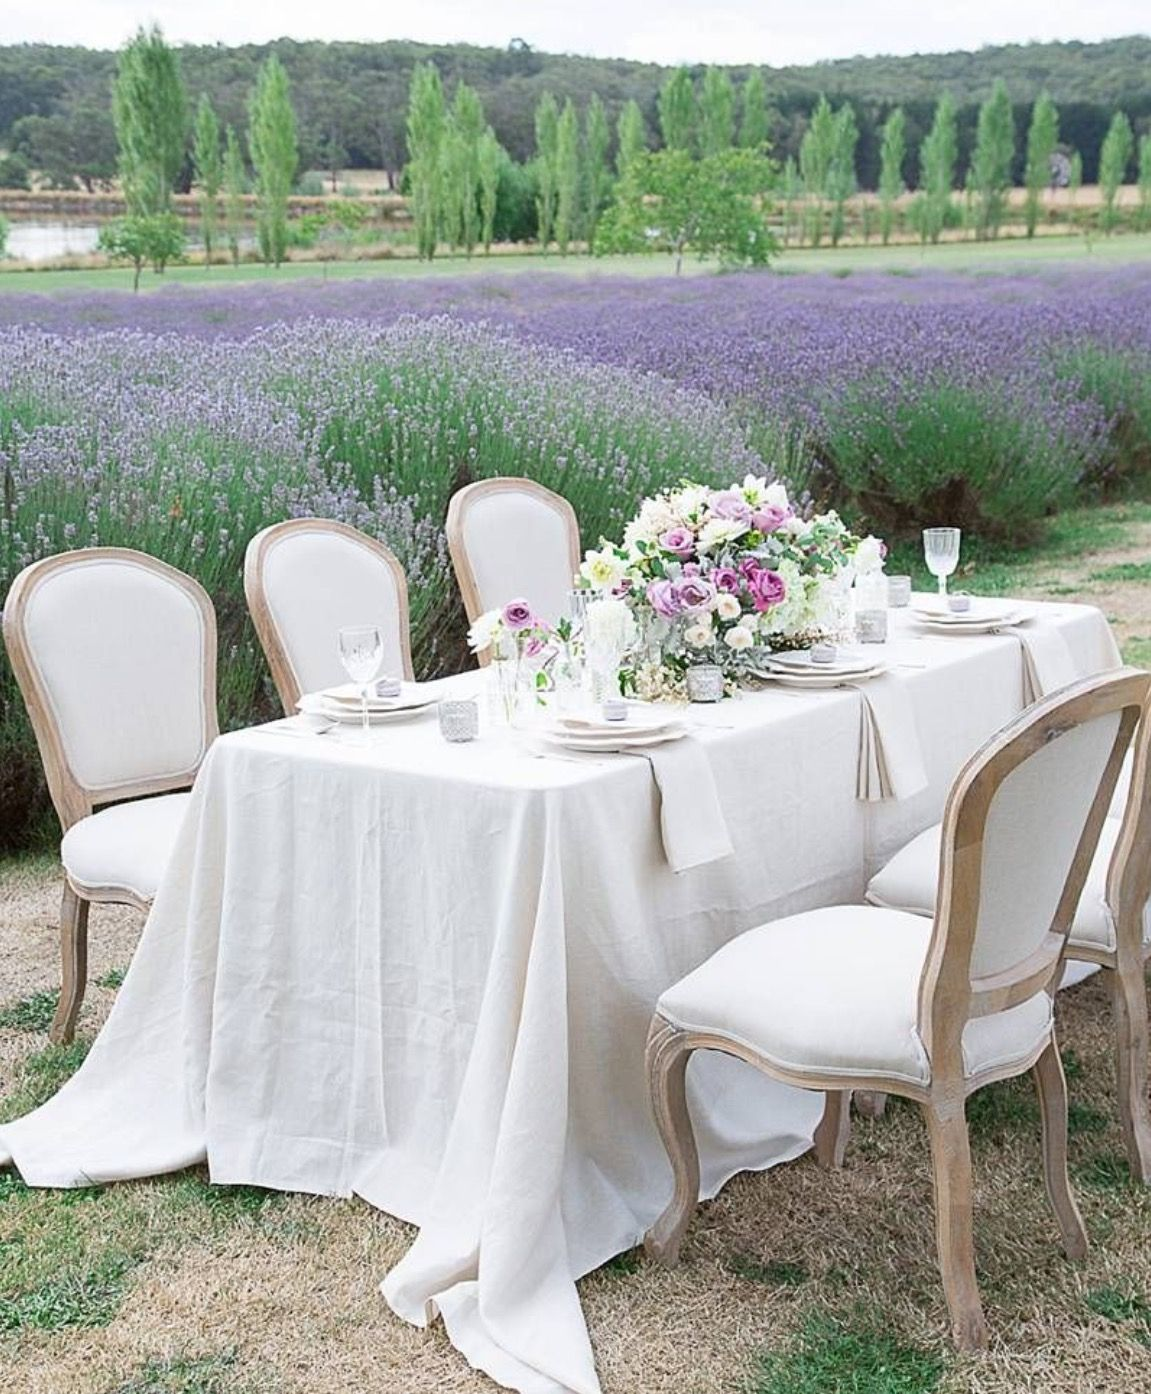 Pin by Leigh Reyne on Let\'s celebrate   Pinterest   Lavender, Dining ...